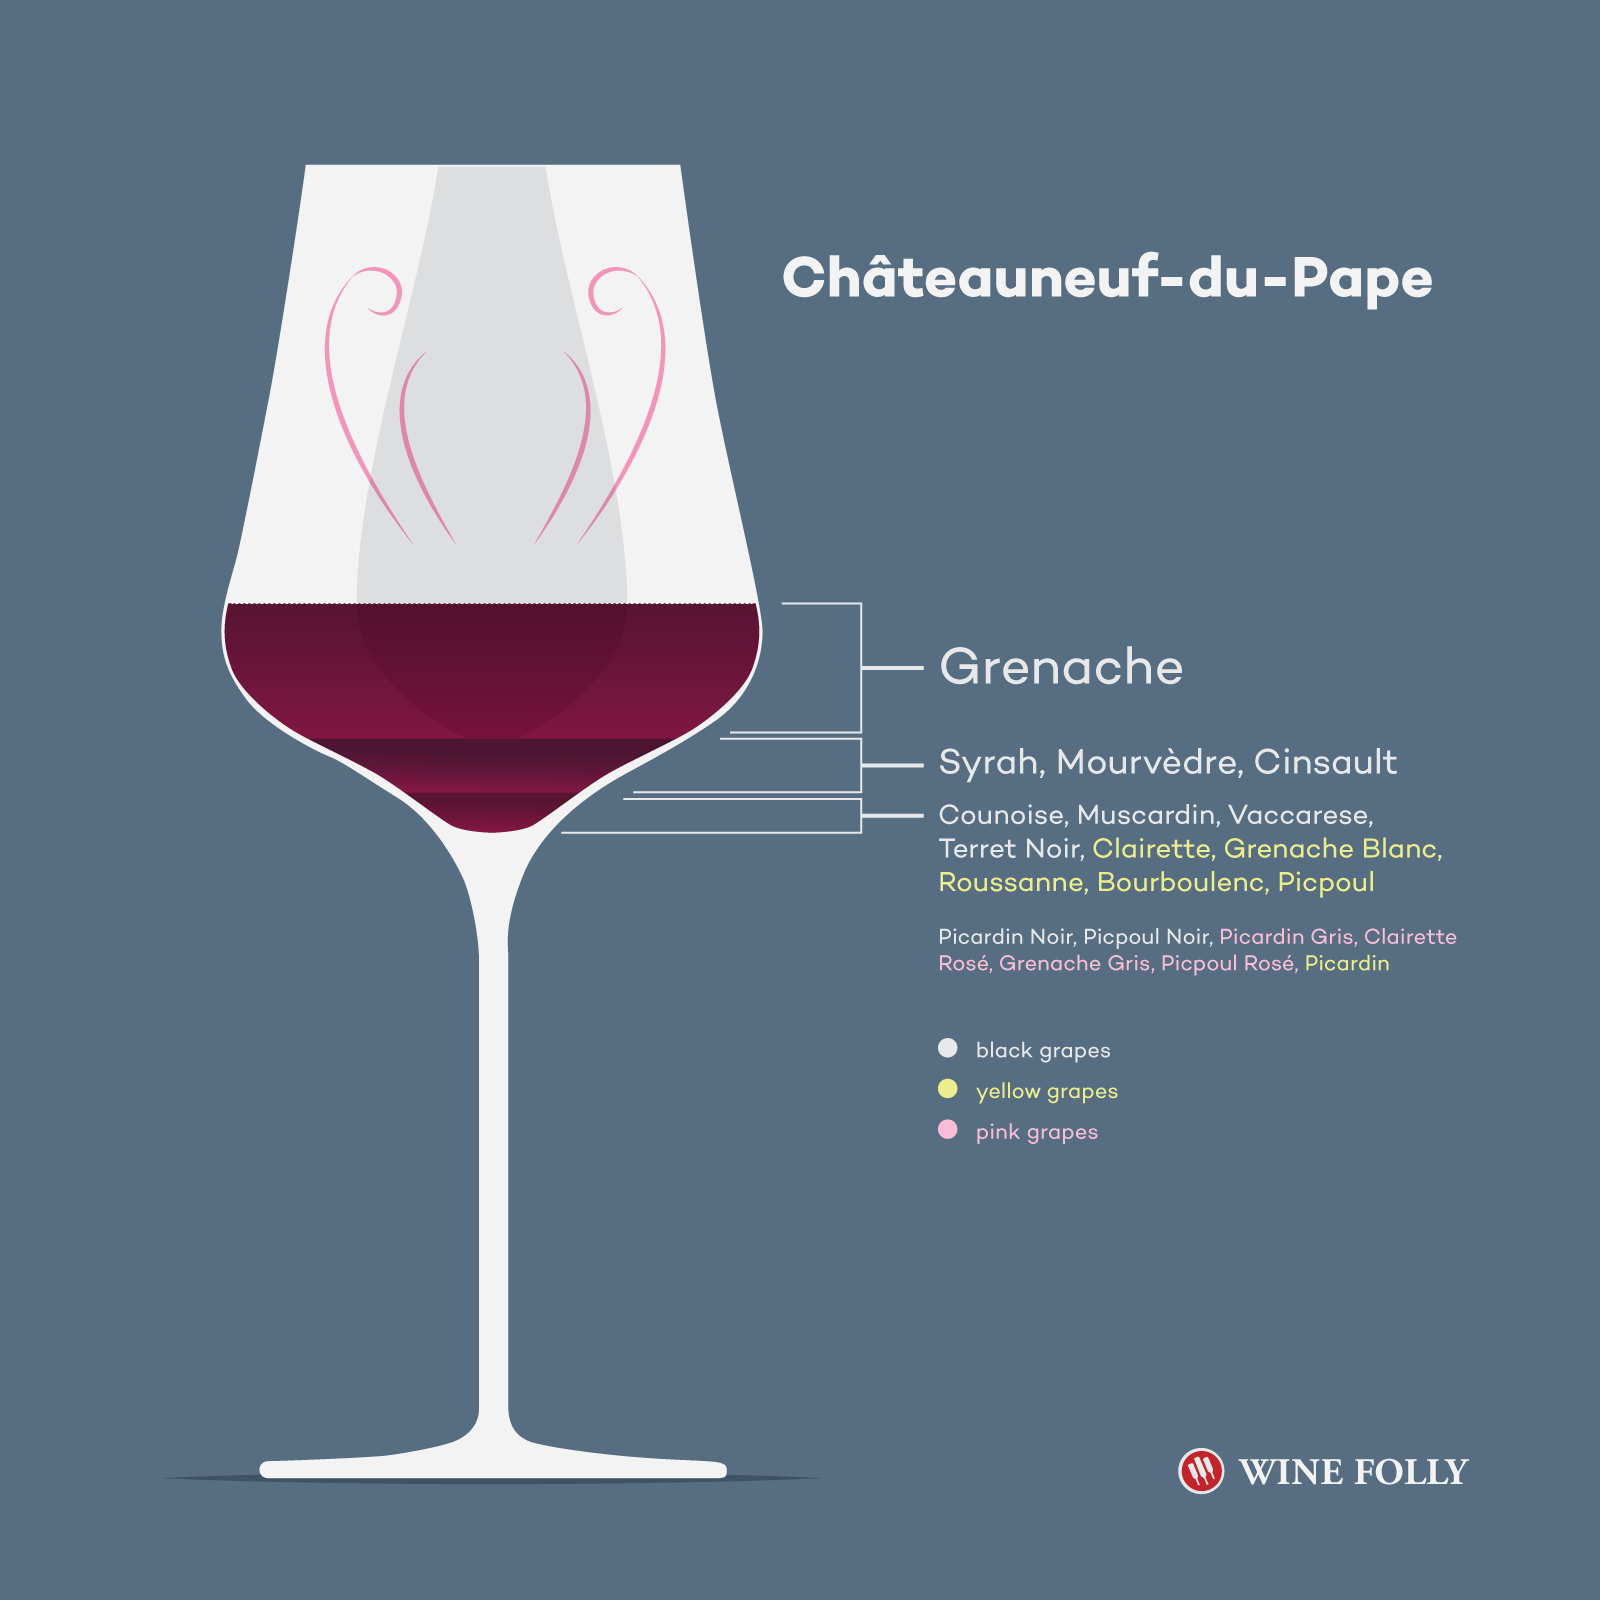 Chateauneuf-du-Pape OfficialGgrapes - There Are 20 - Glass Illustration by Wine Folly